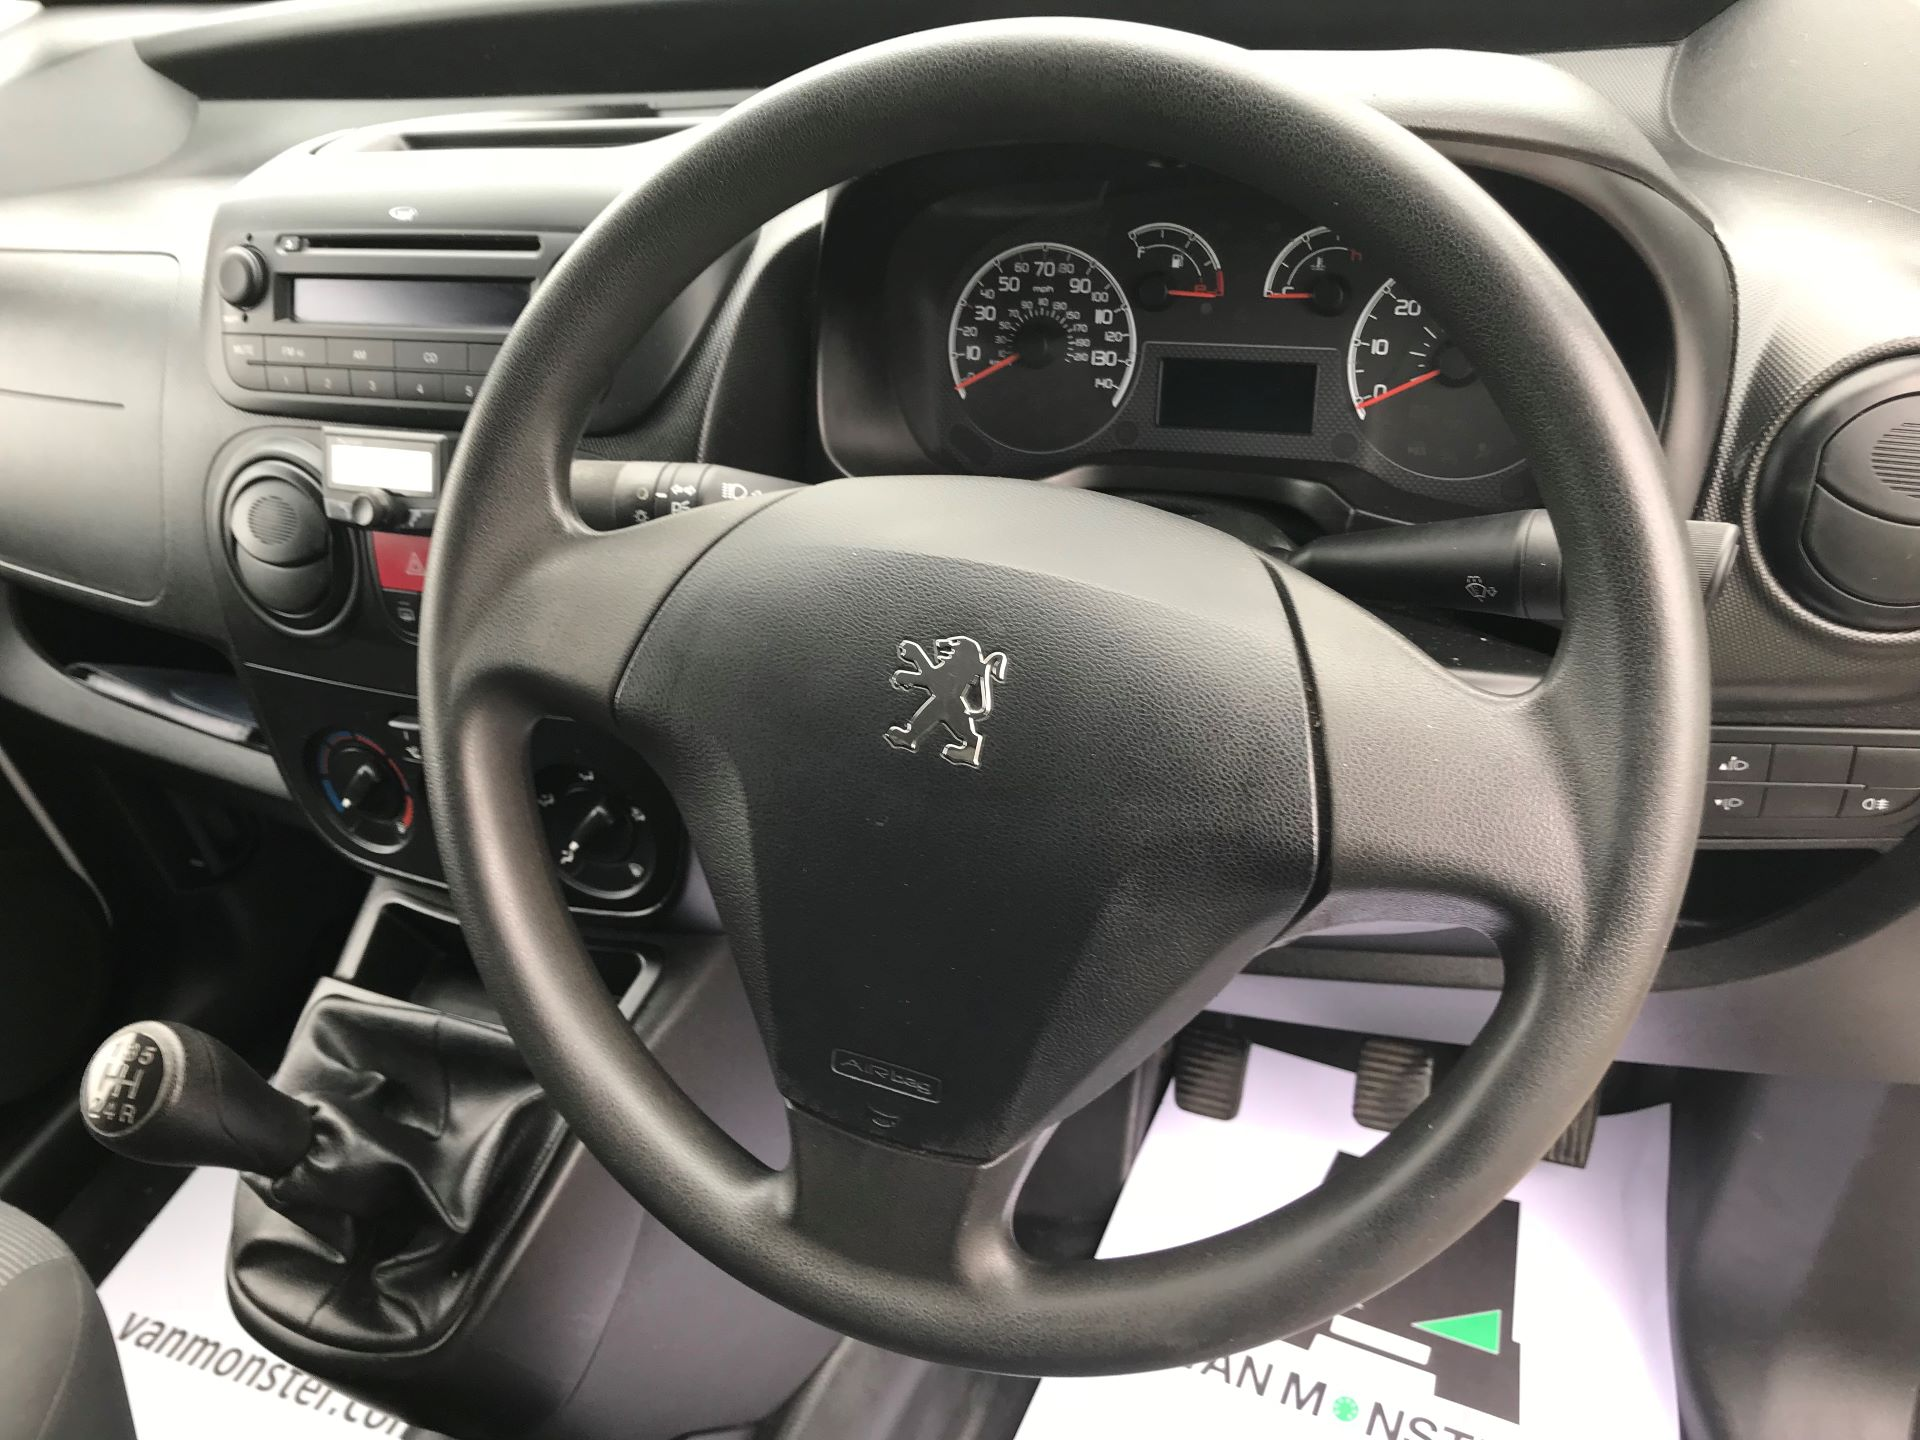 2014 Peugeot Bipper 1.3 HDI 75 S PLUS PACK NON S/S EURO 5 (NU14NPO) Image 23